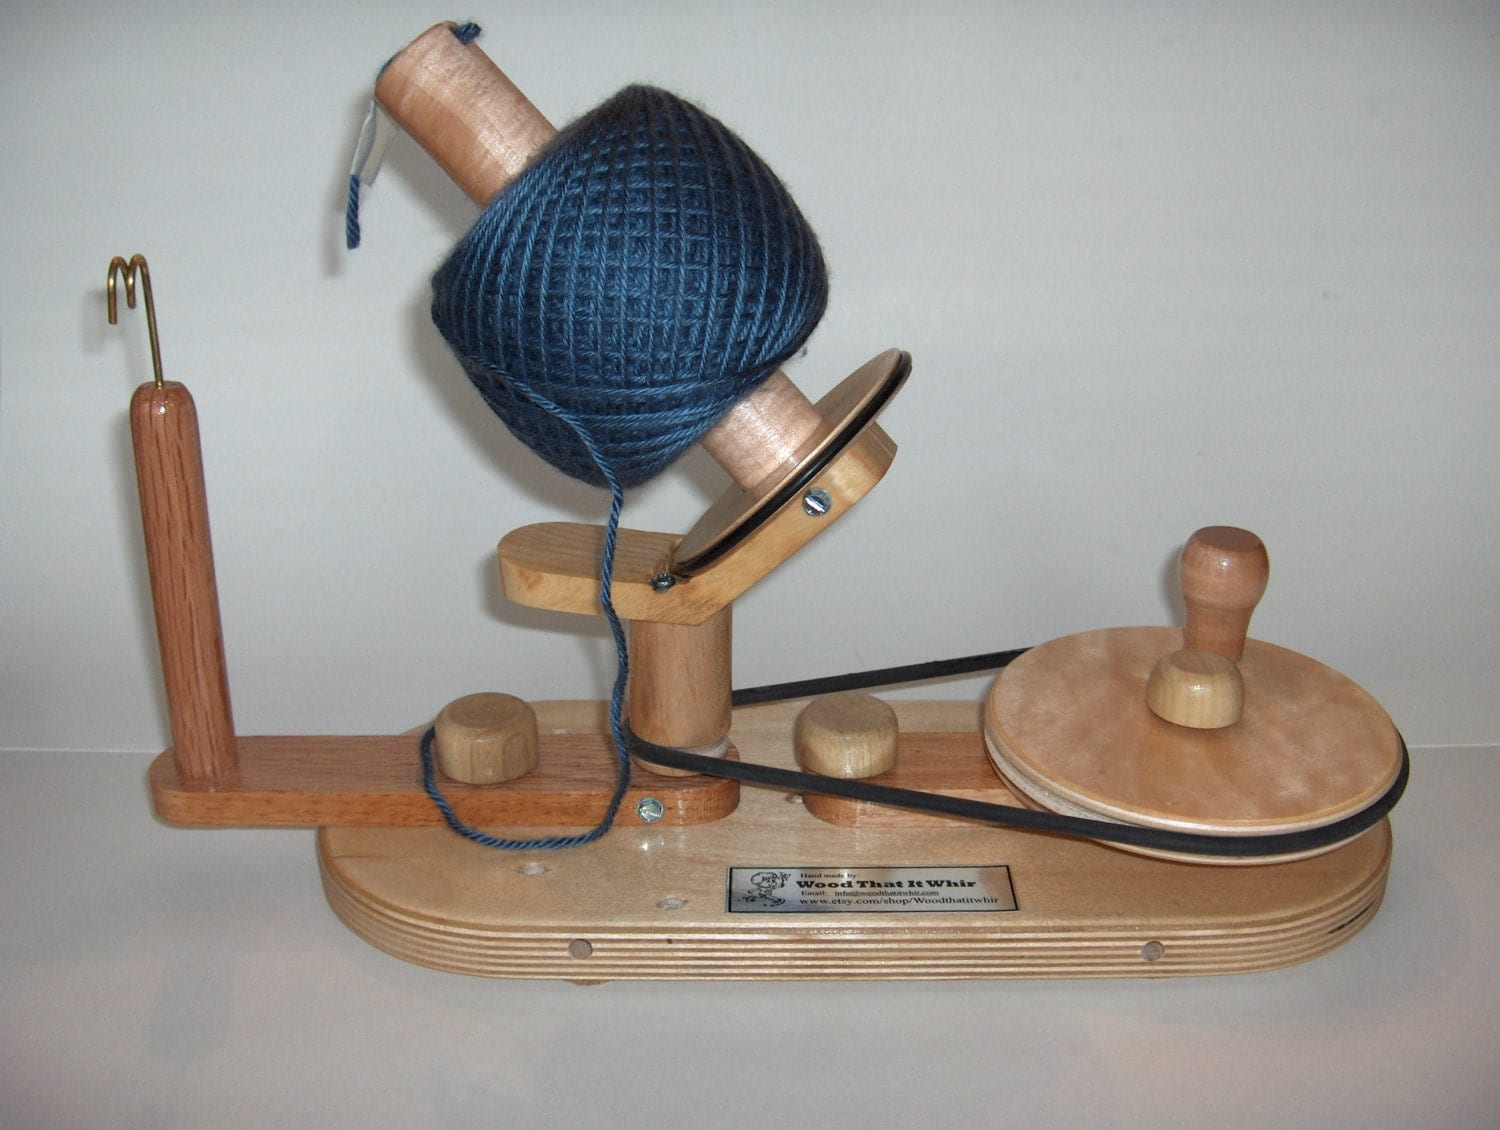 RESERVED Yarn Ball Winder by Wood That It Whir, Handmade ...